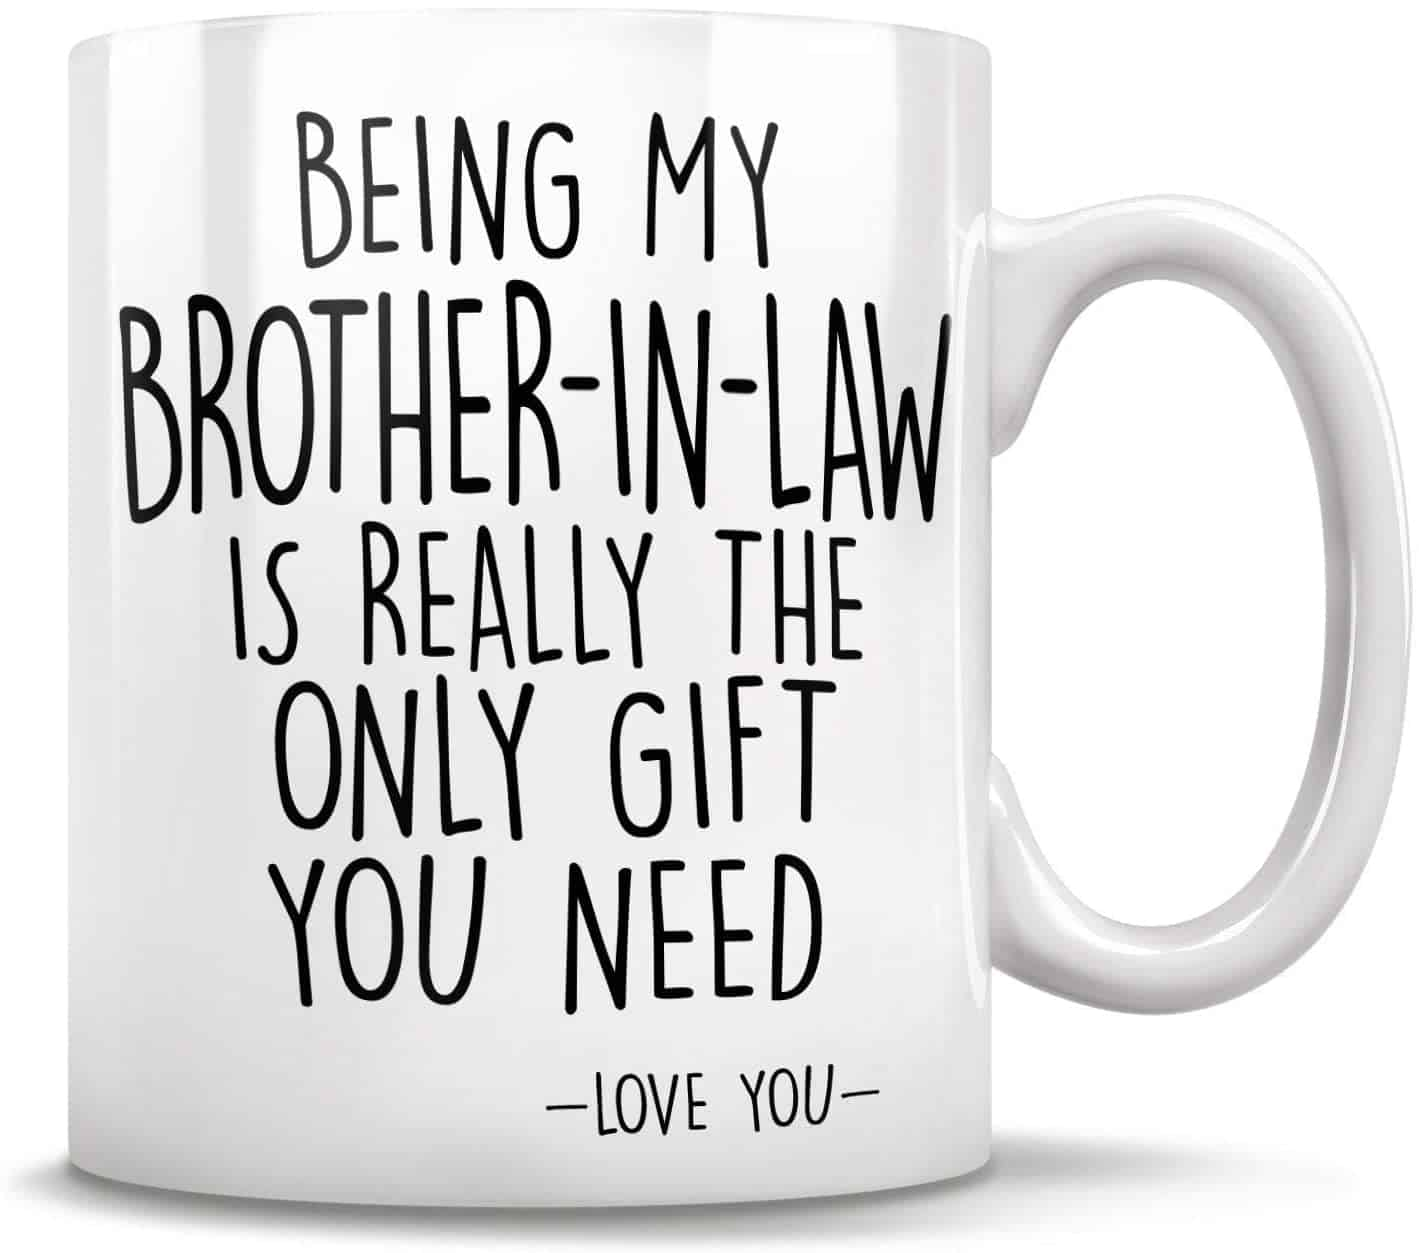 Brother-in-law Gift Mug